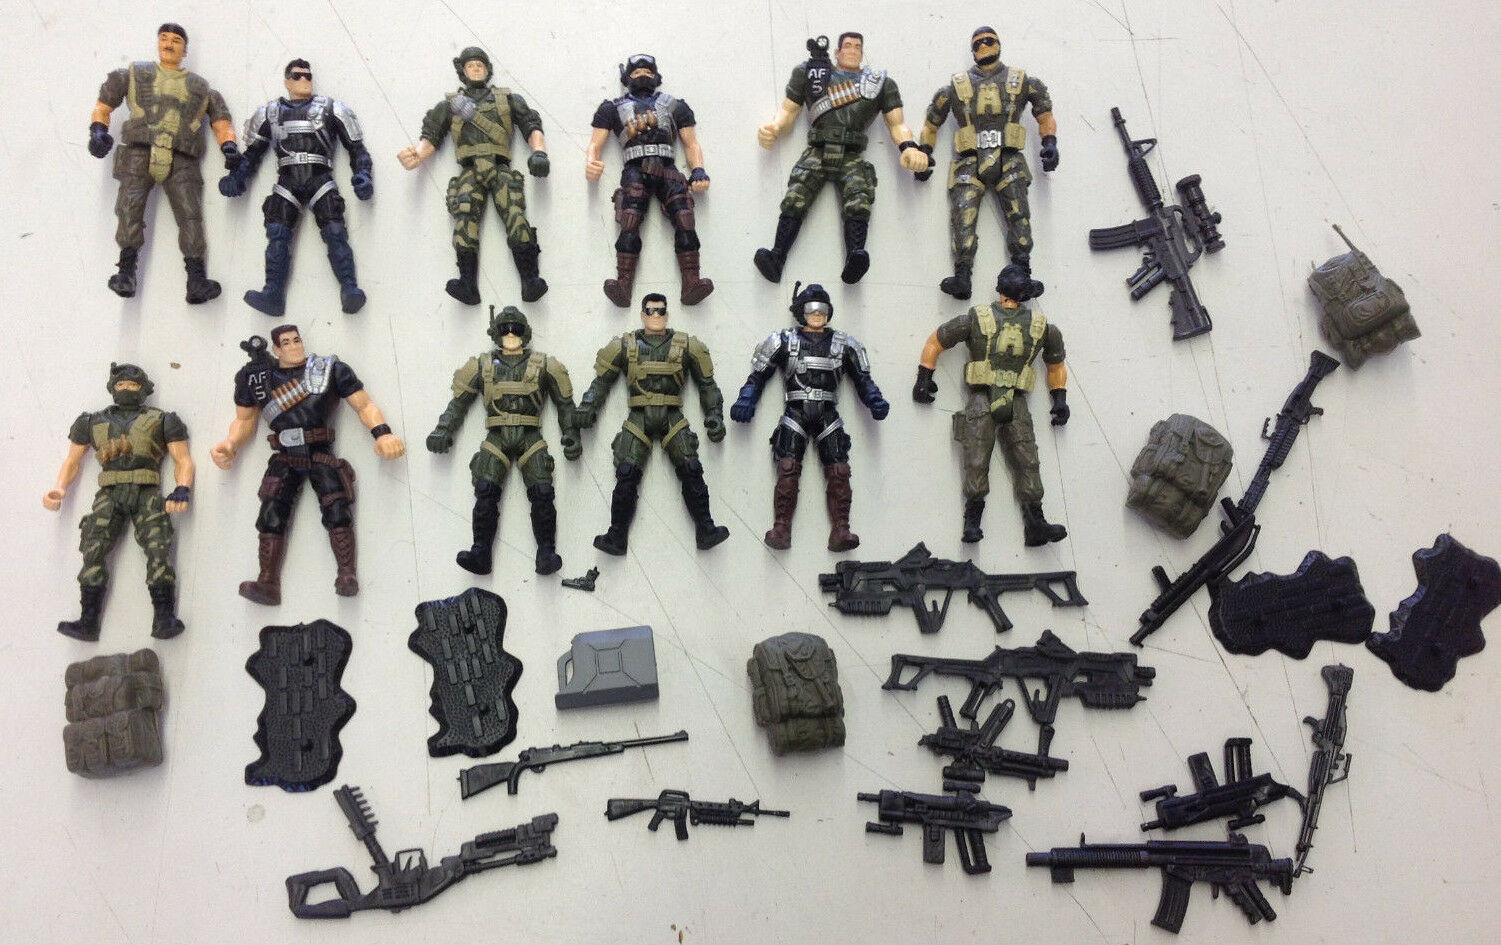 HK Design - CHAP MEI Army Action 3.75 Figure Lot W/ Accessories  See Pics